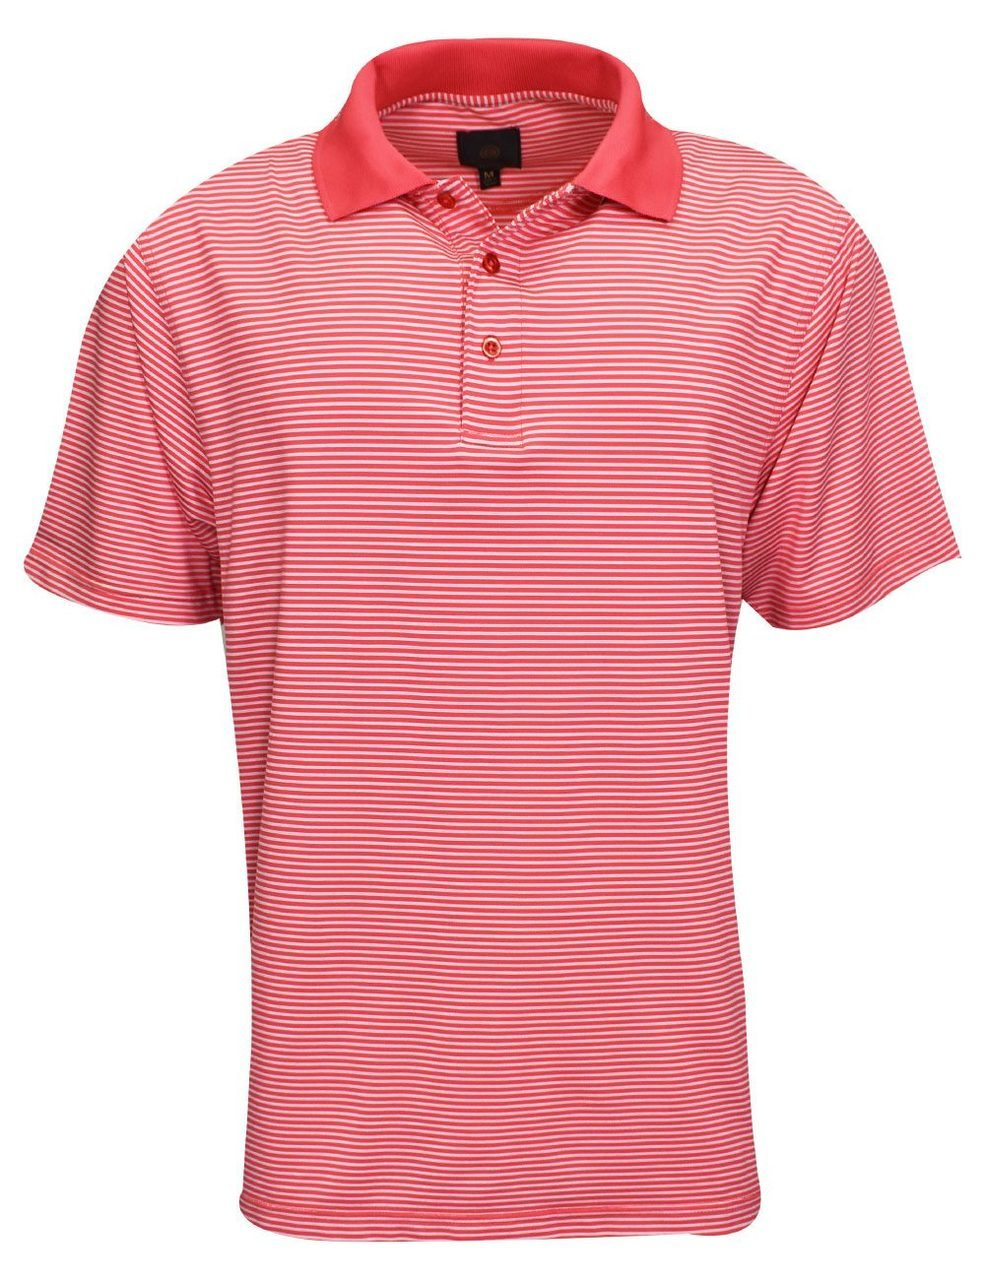 Rainwater's Fineline Stripe Polo in Coral - Rainwater's Men's Clothing and Tuxedo Rental